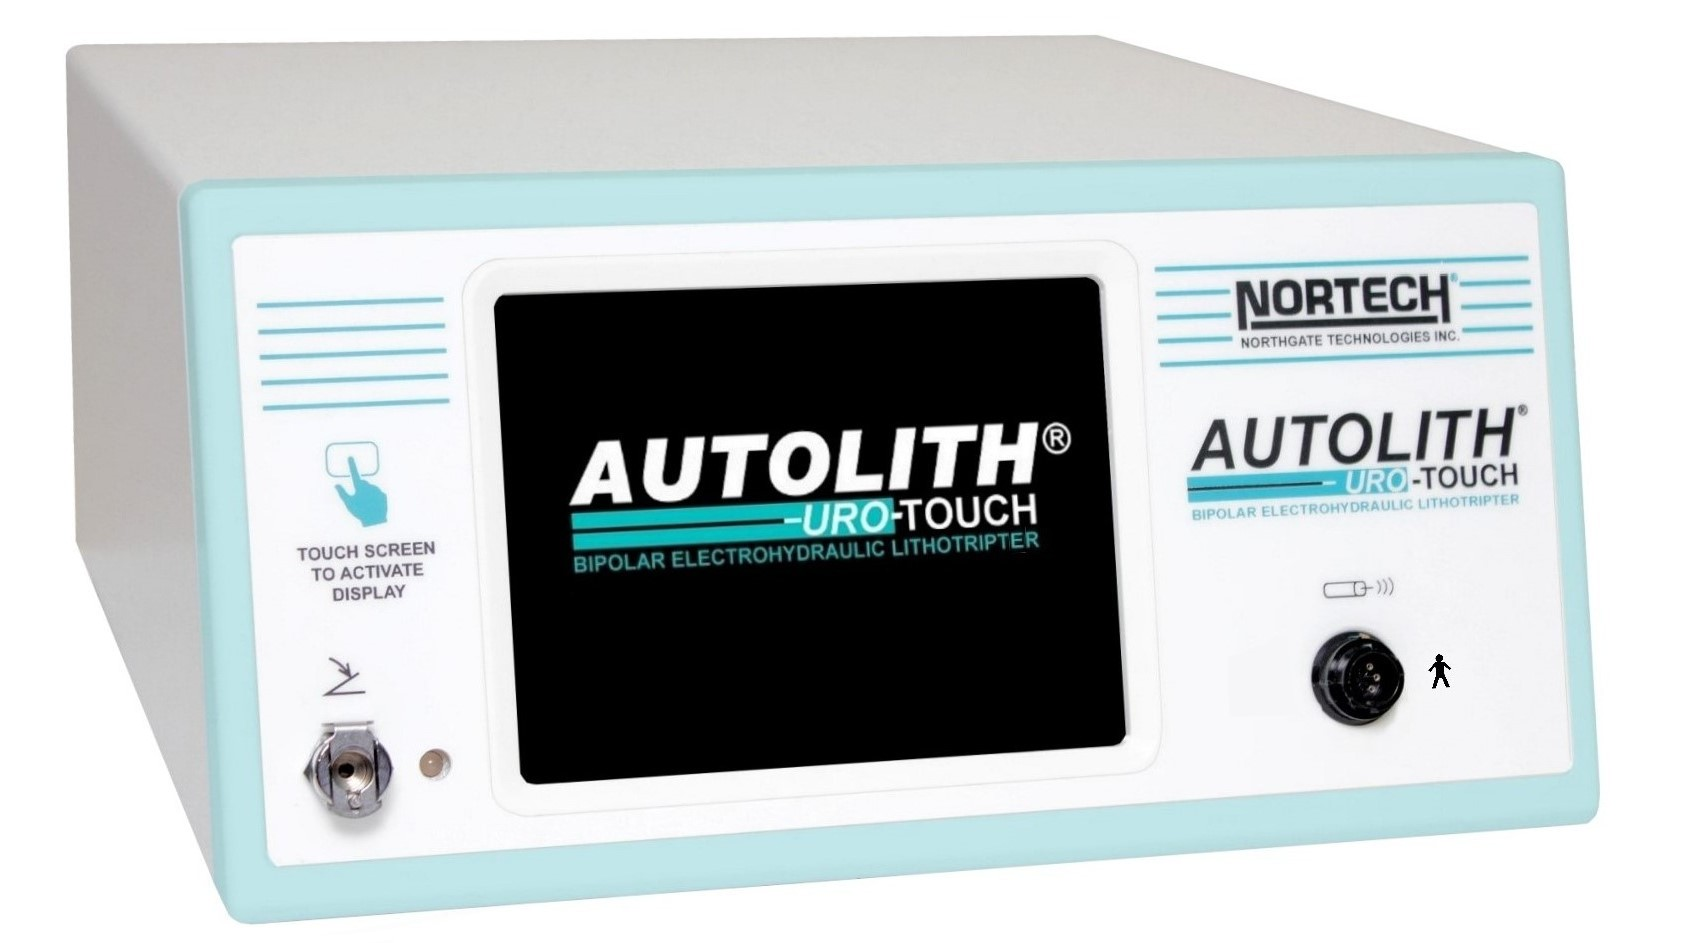 product image of Autolith Uro-Touch